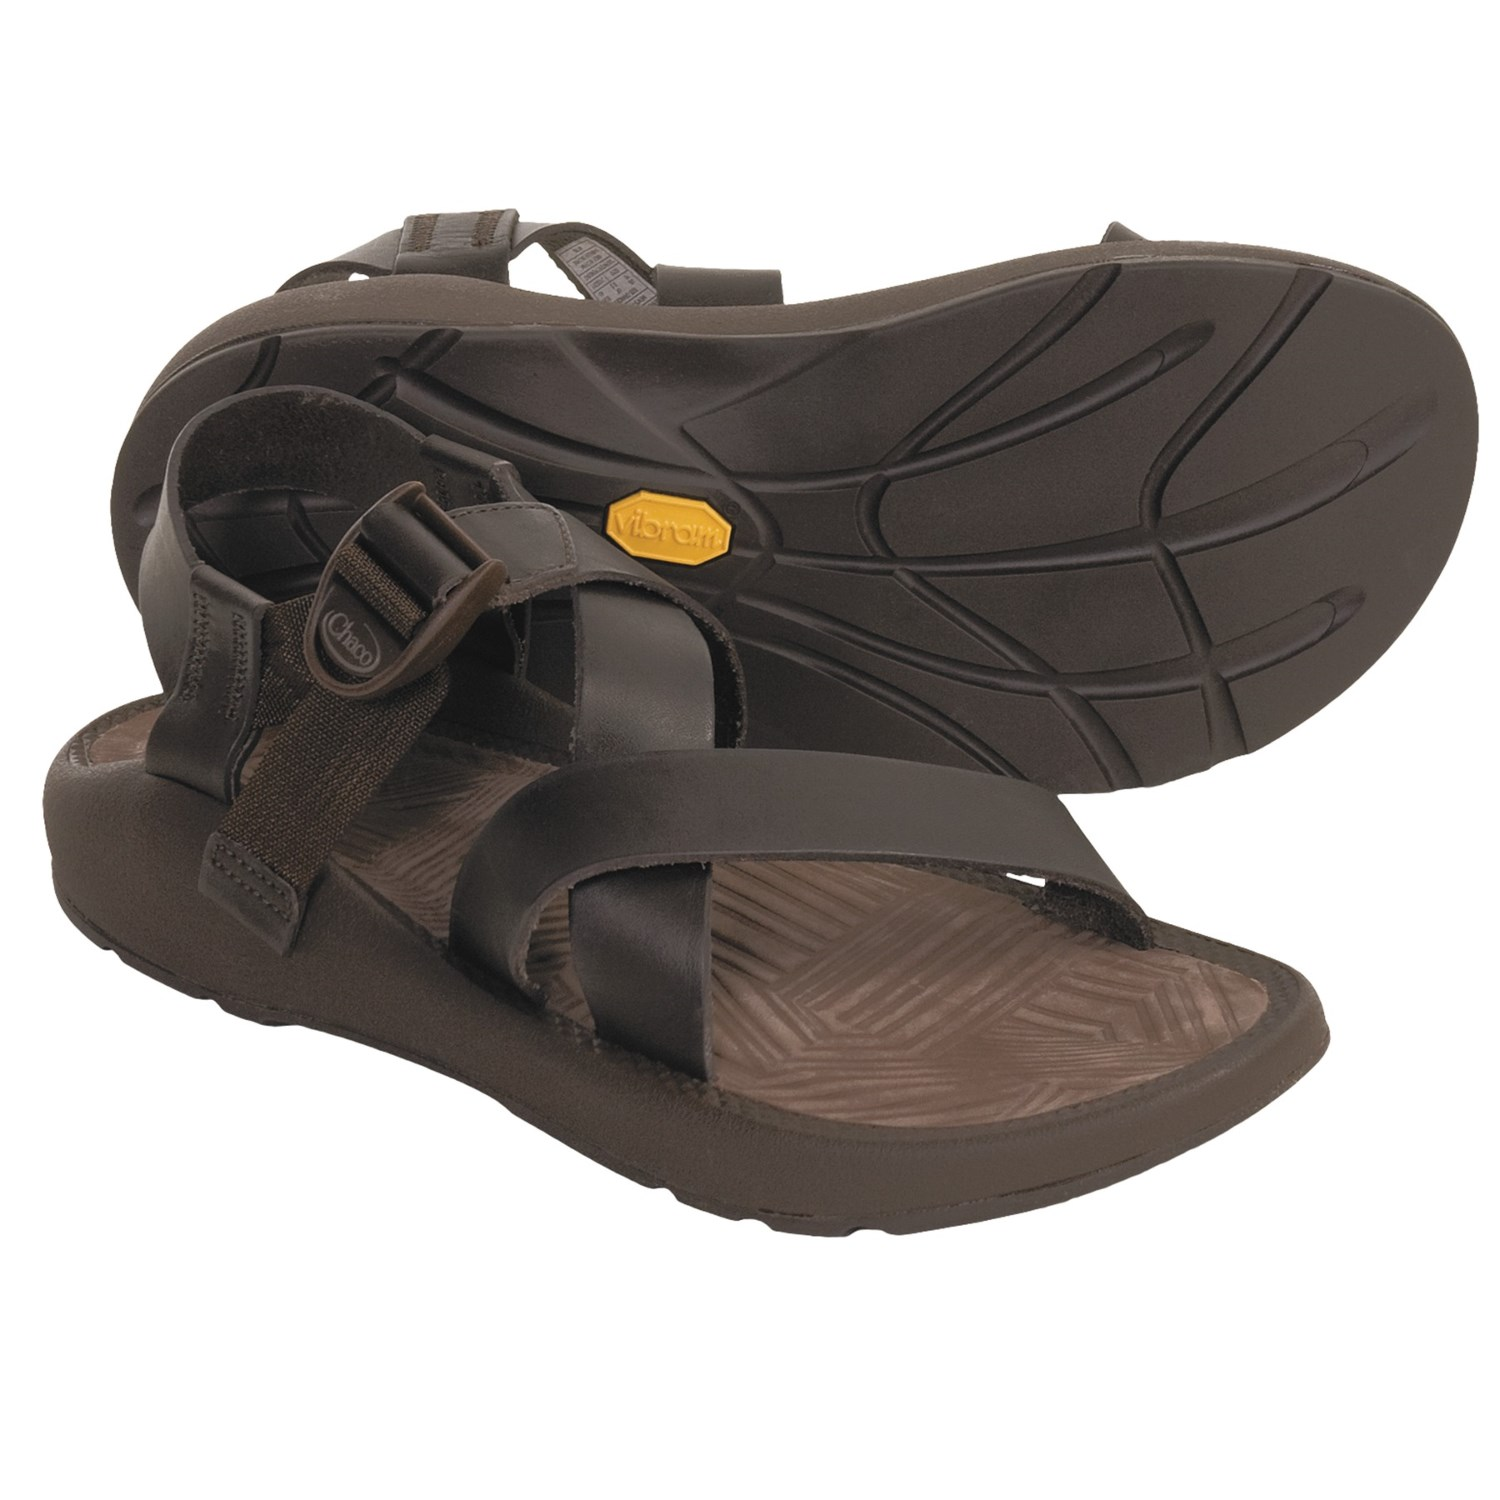 Shop for Chaco Women's Sandals at REI Outlet - FREE SHIPPING With $50 minimum purchase. Top quality, great selection and expert advice you can trust. % Satisfaction Guarantee.